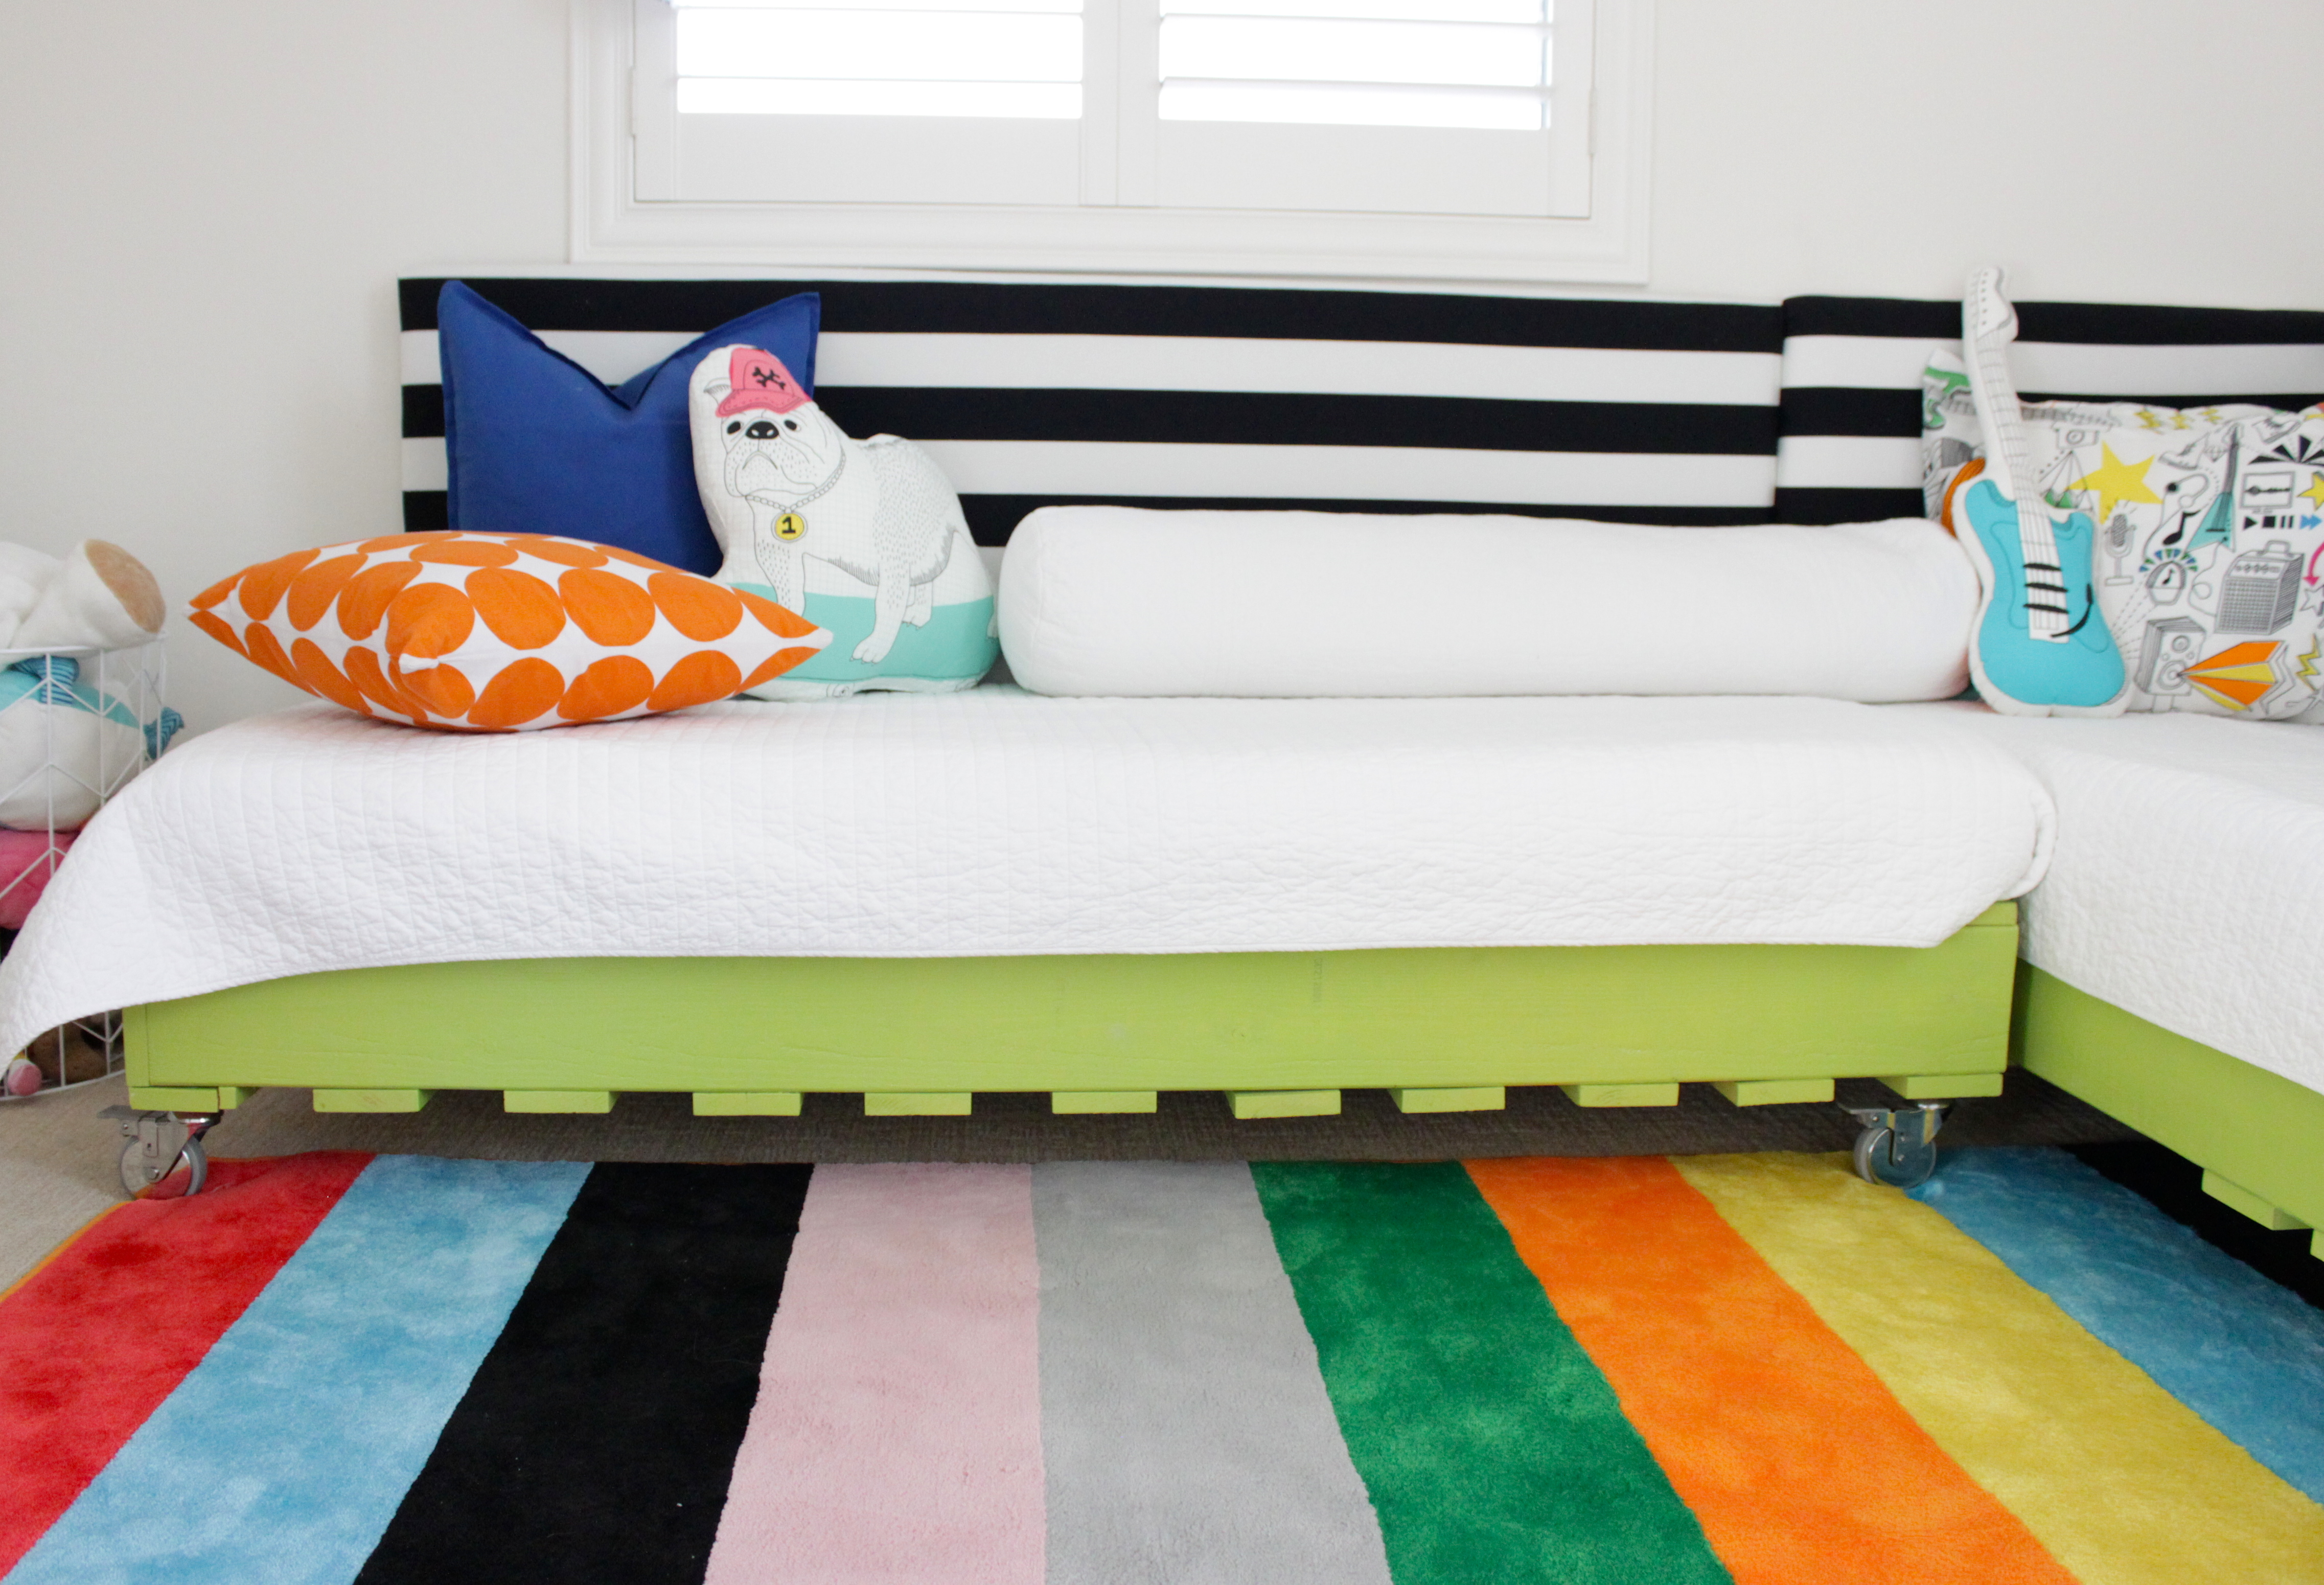 DIY Pallet Bed Mini Makeover - Project Nursery on Pallet Bed Room  id=68451